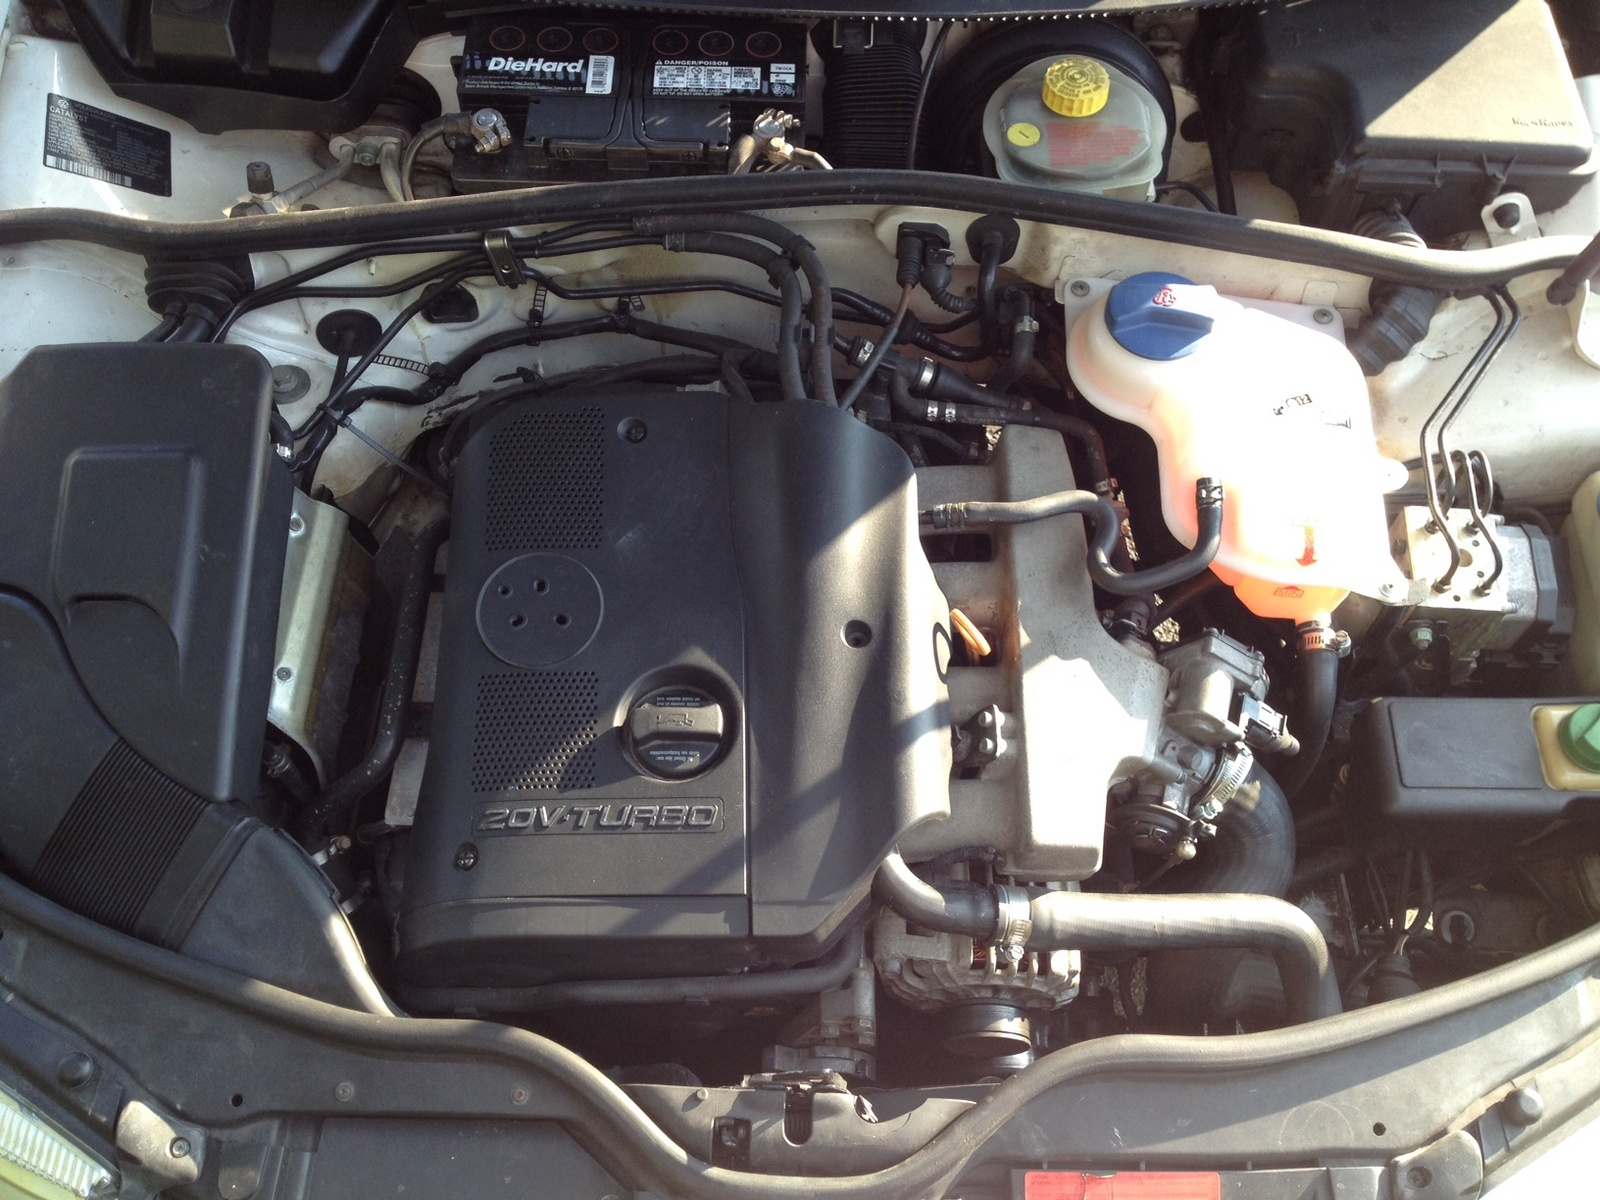 2000 Vw Passat Turbo Upgrade Volkswagen Car 1999 Jetta Engine Diagram Circuit Wiring And Hub